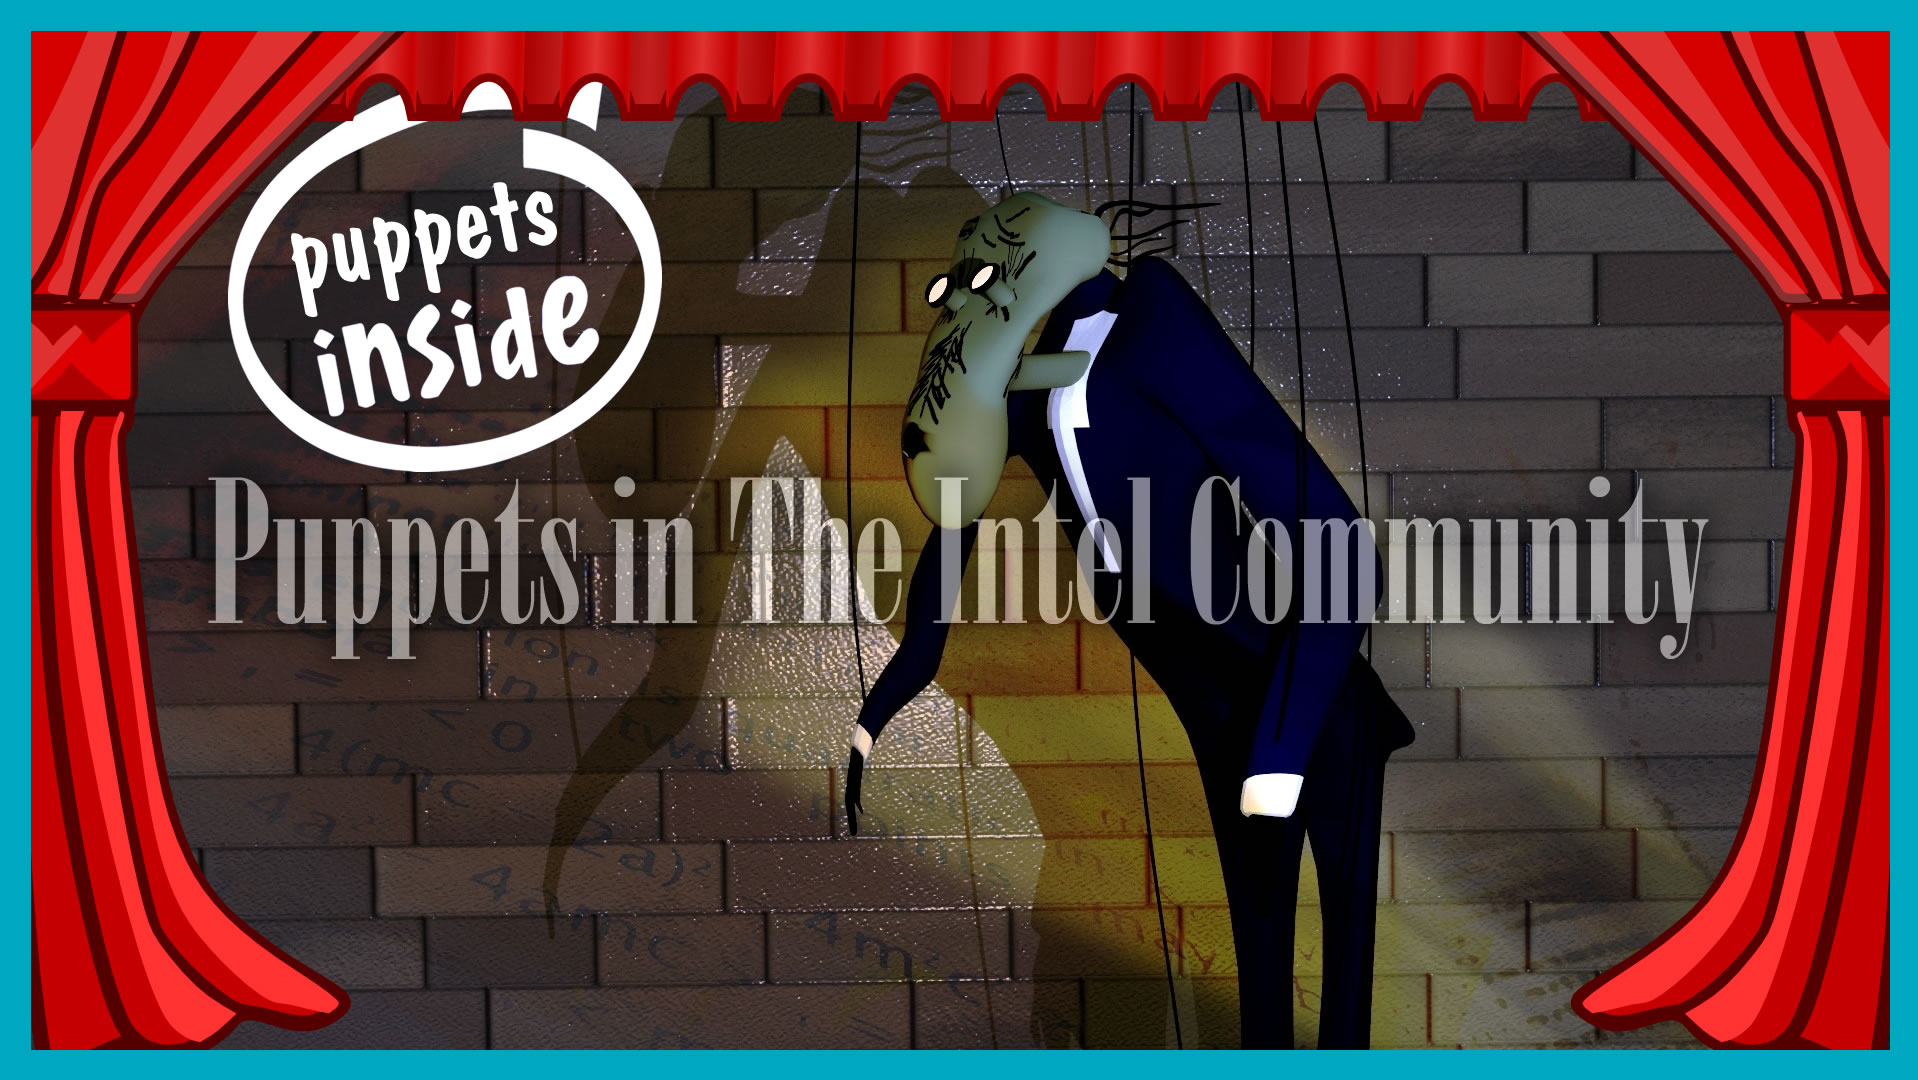 Puppets in The Intel Community